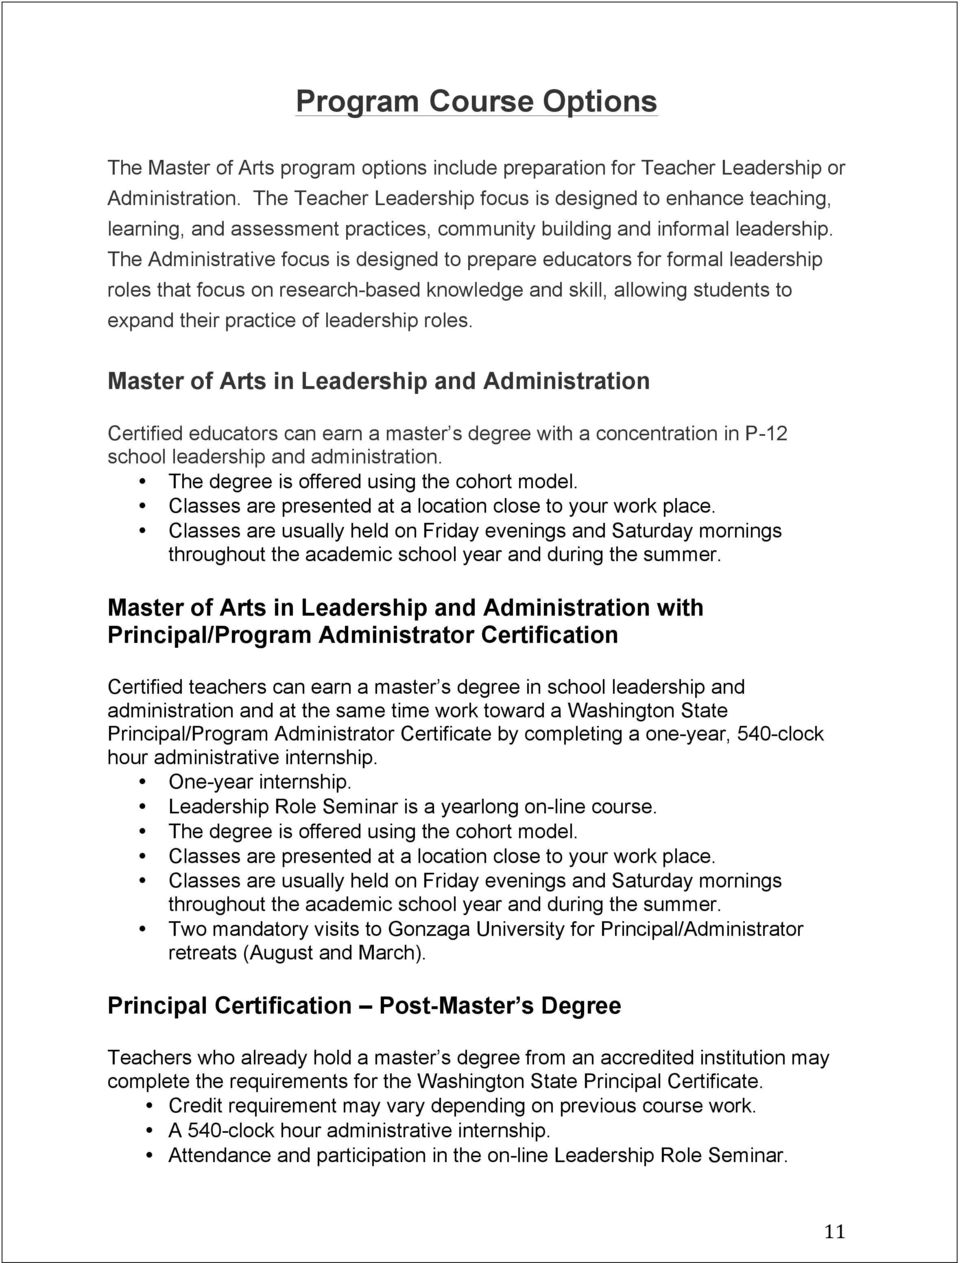 The Administrative focus is designed to prepare educators for formal leadership roles that focus on research-based knowledge and skill, allowing students to expand their practice of leadership roles.